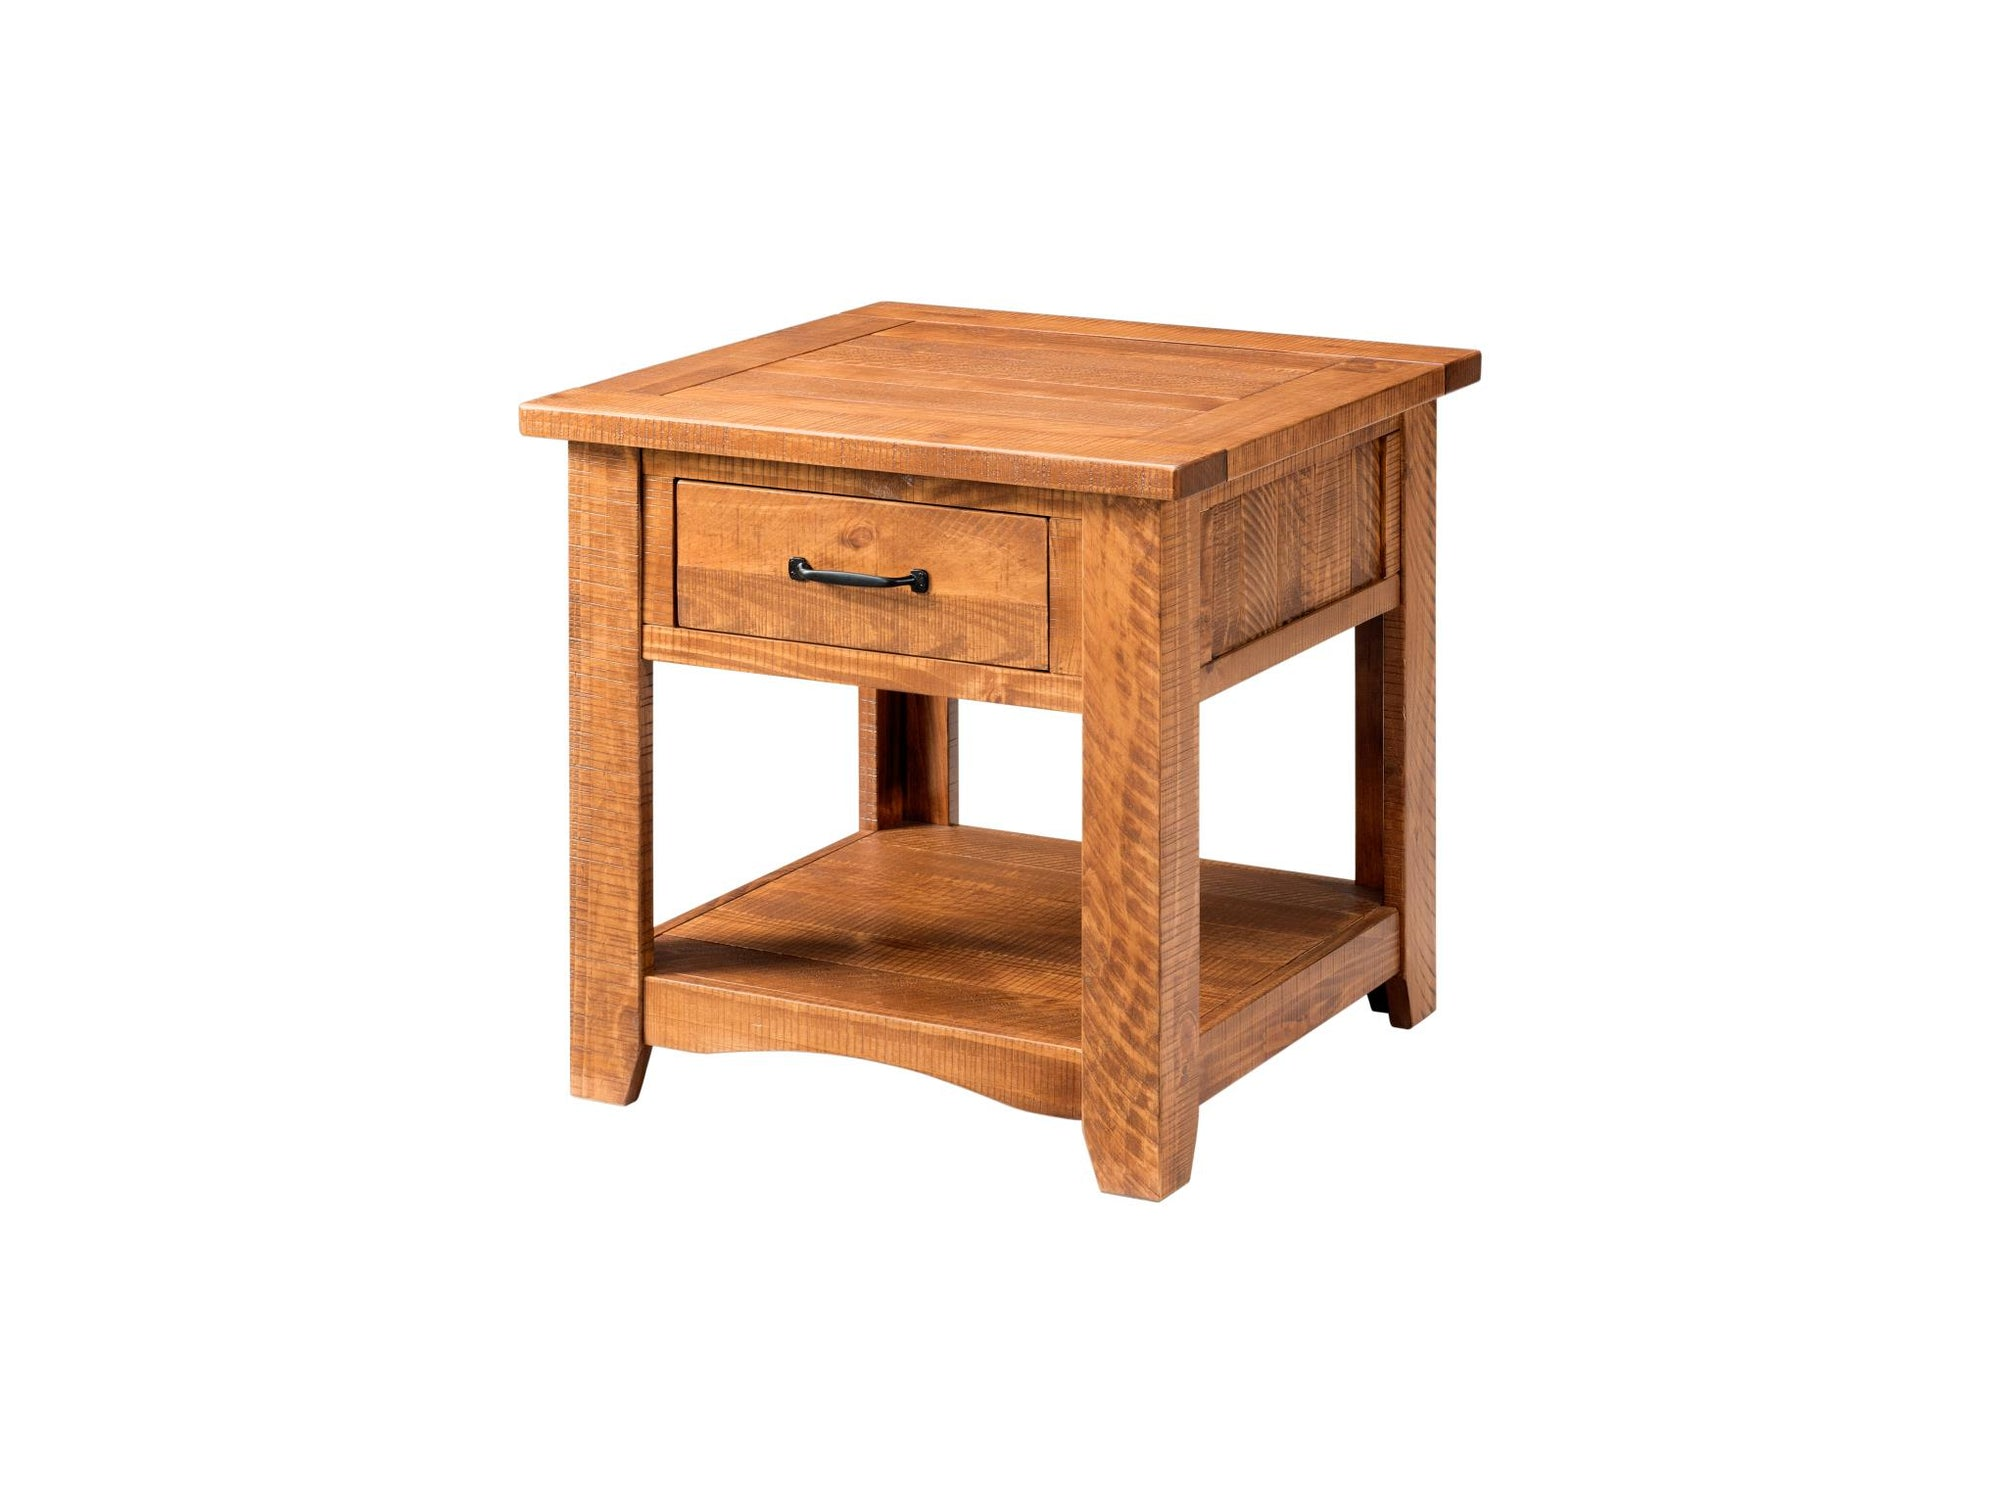 Rustic Occasional Nightstand/End Table - Honey tabacco